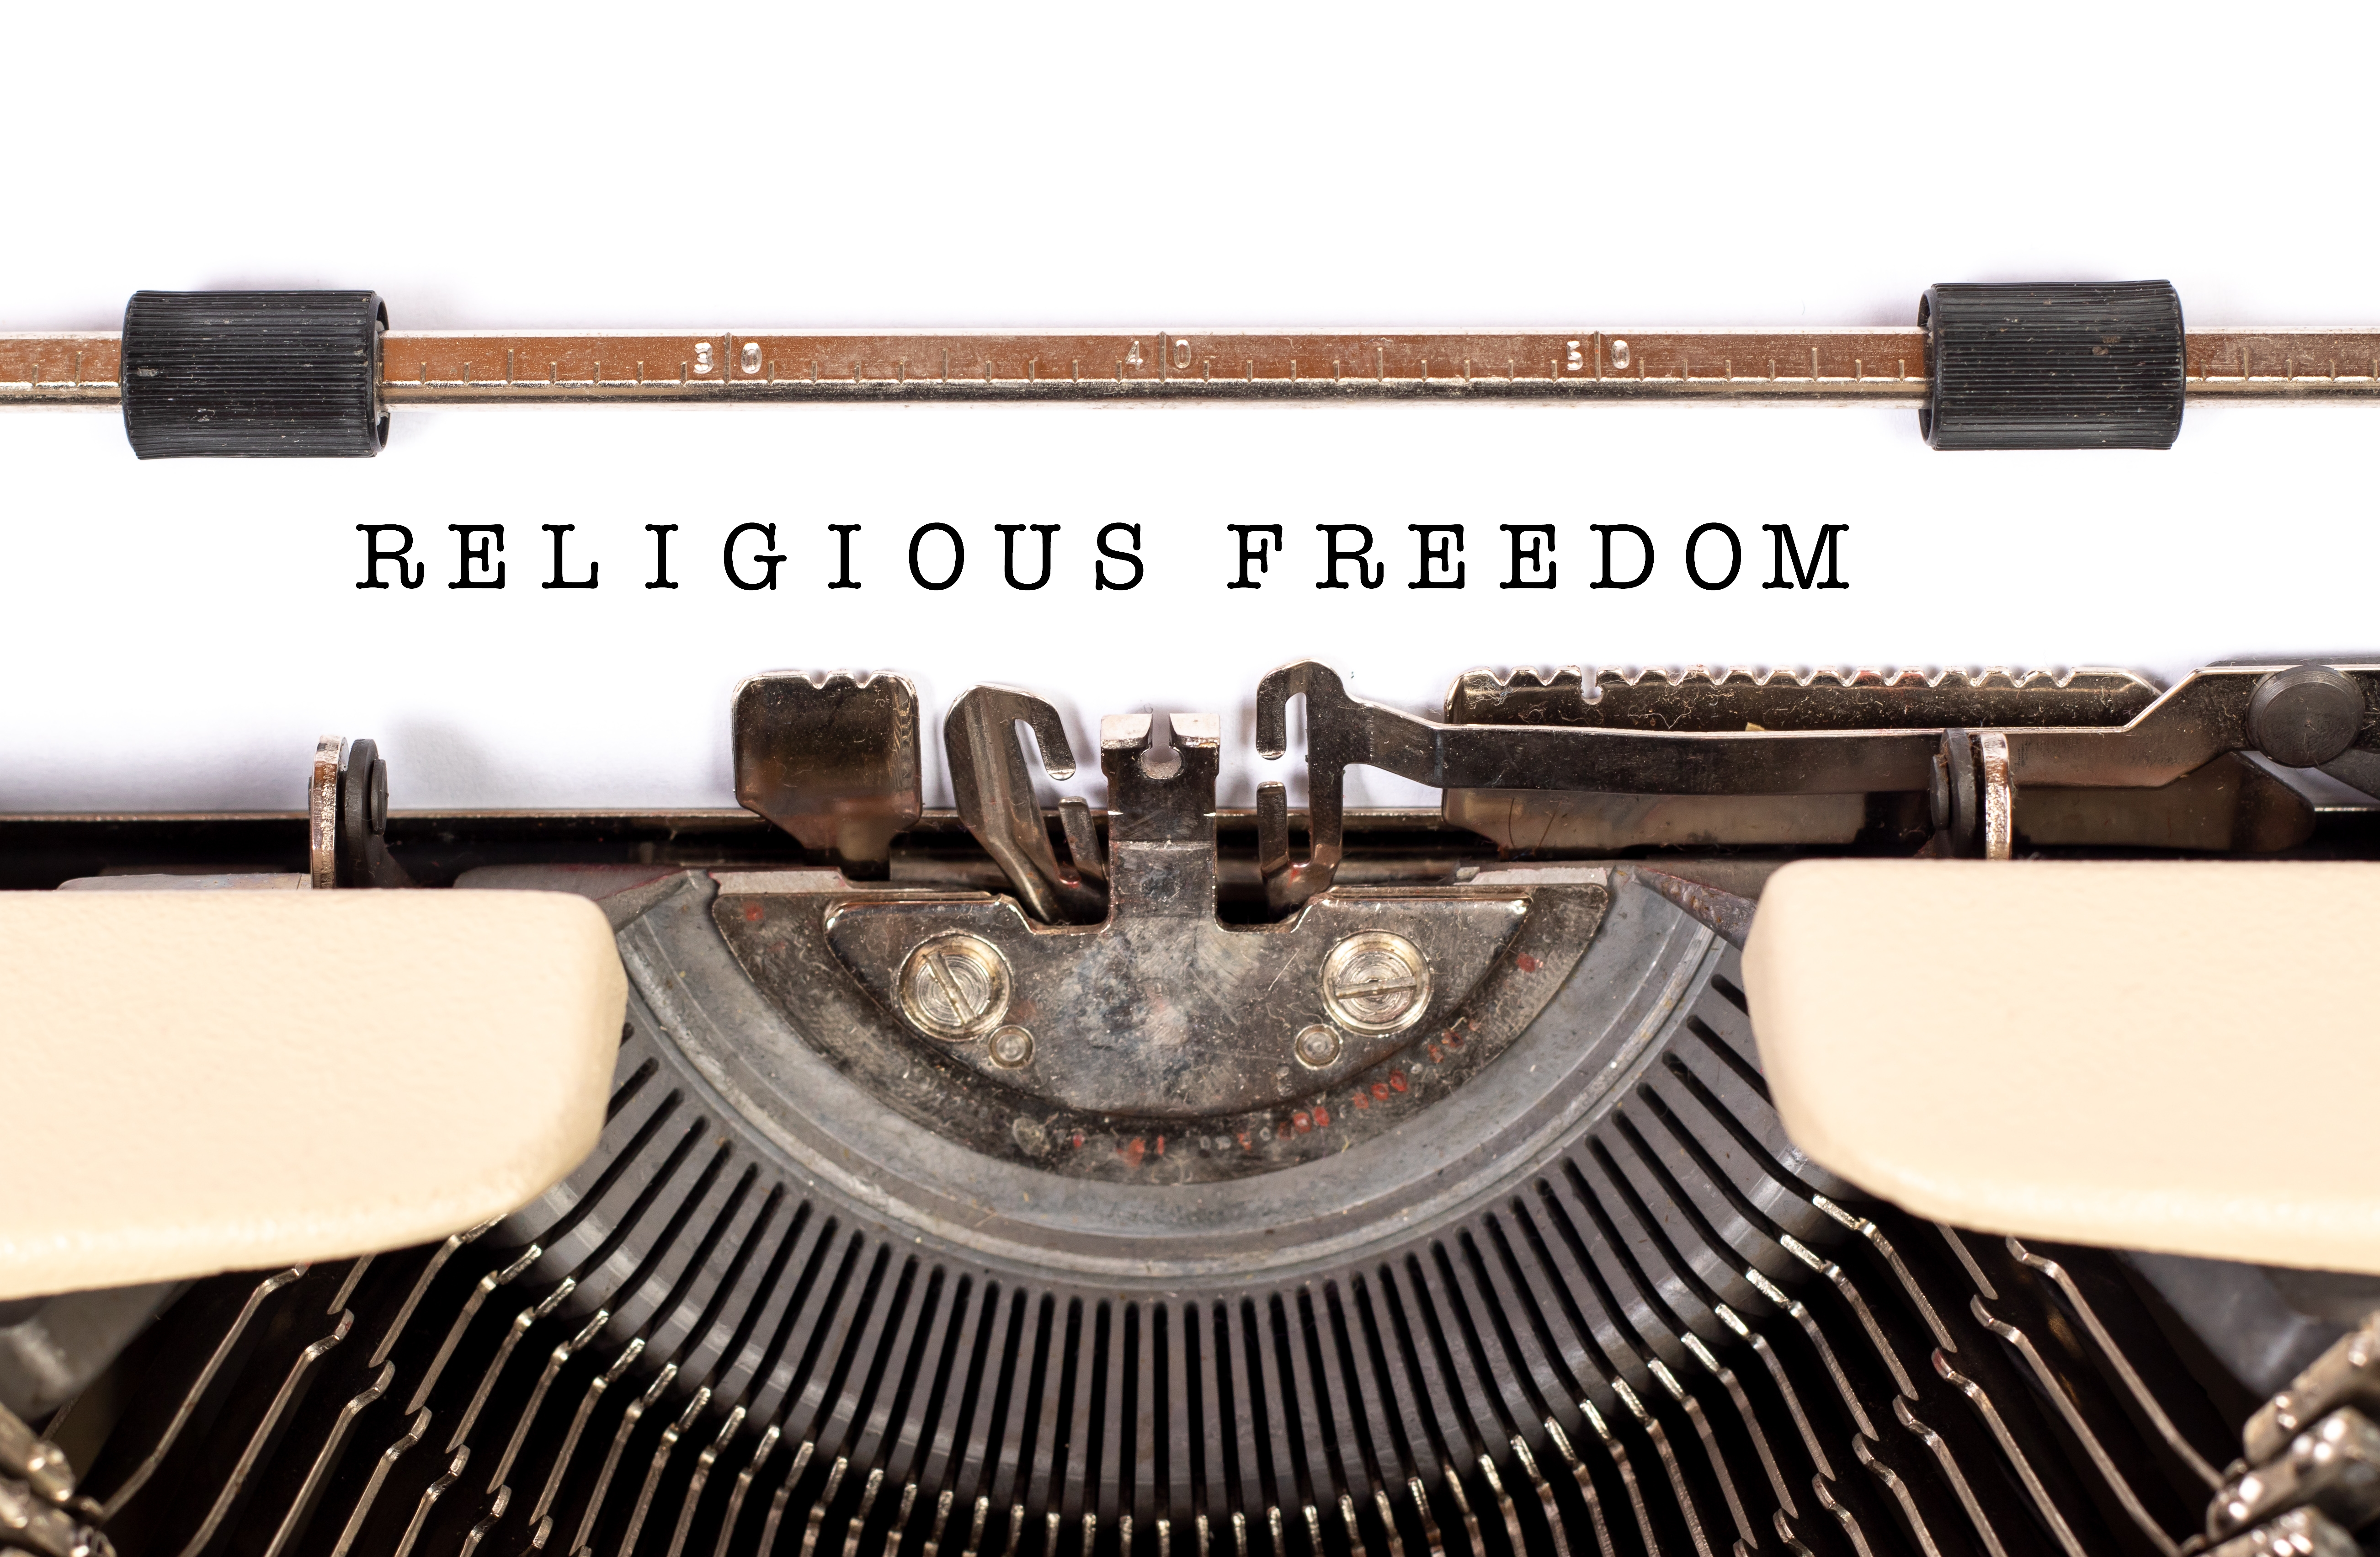 The reason why the U.S. religious freedom panel exists.